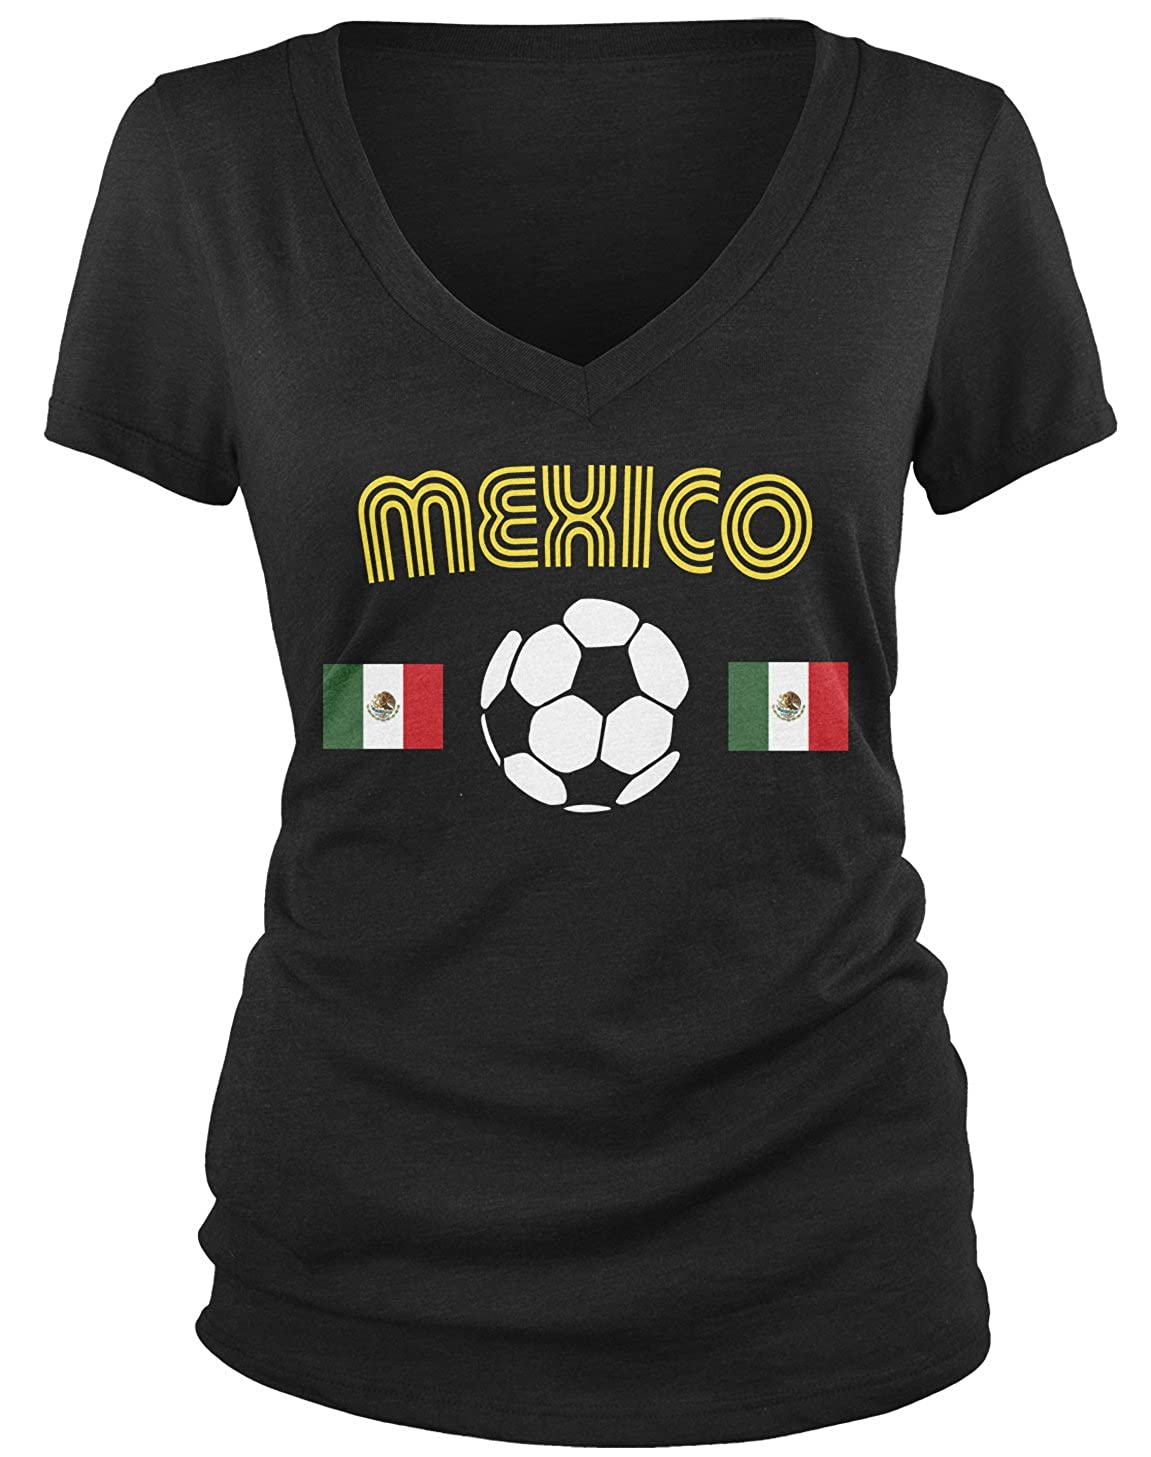 4058d02a3 Mexican T-Shirts for Women  Many Original